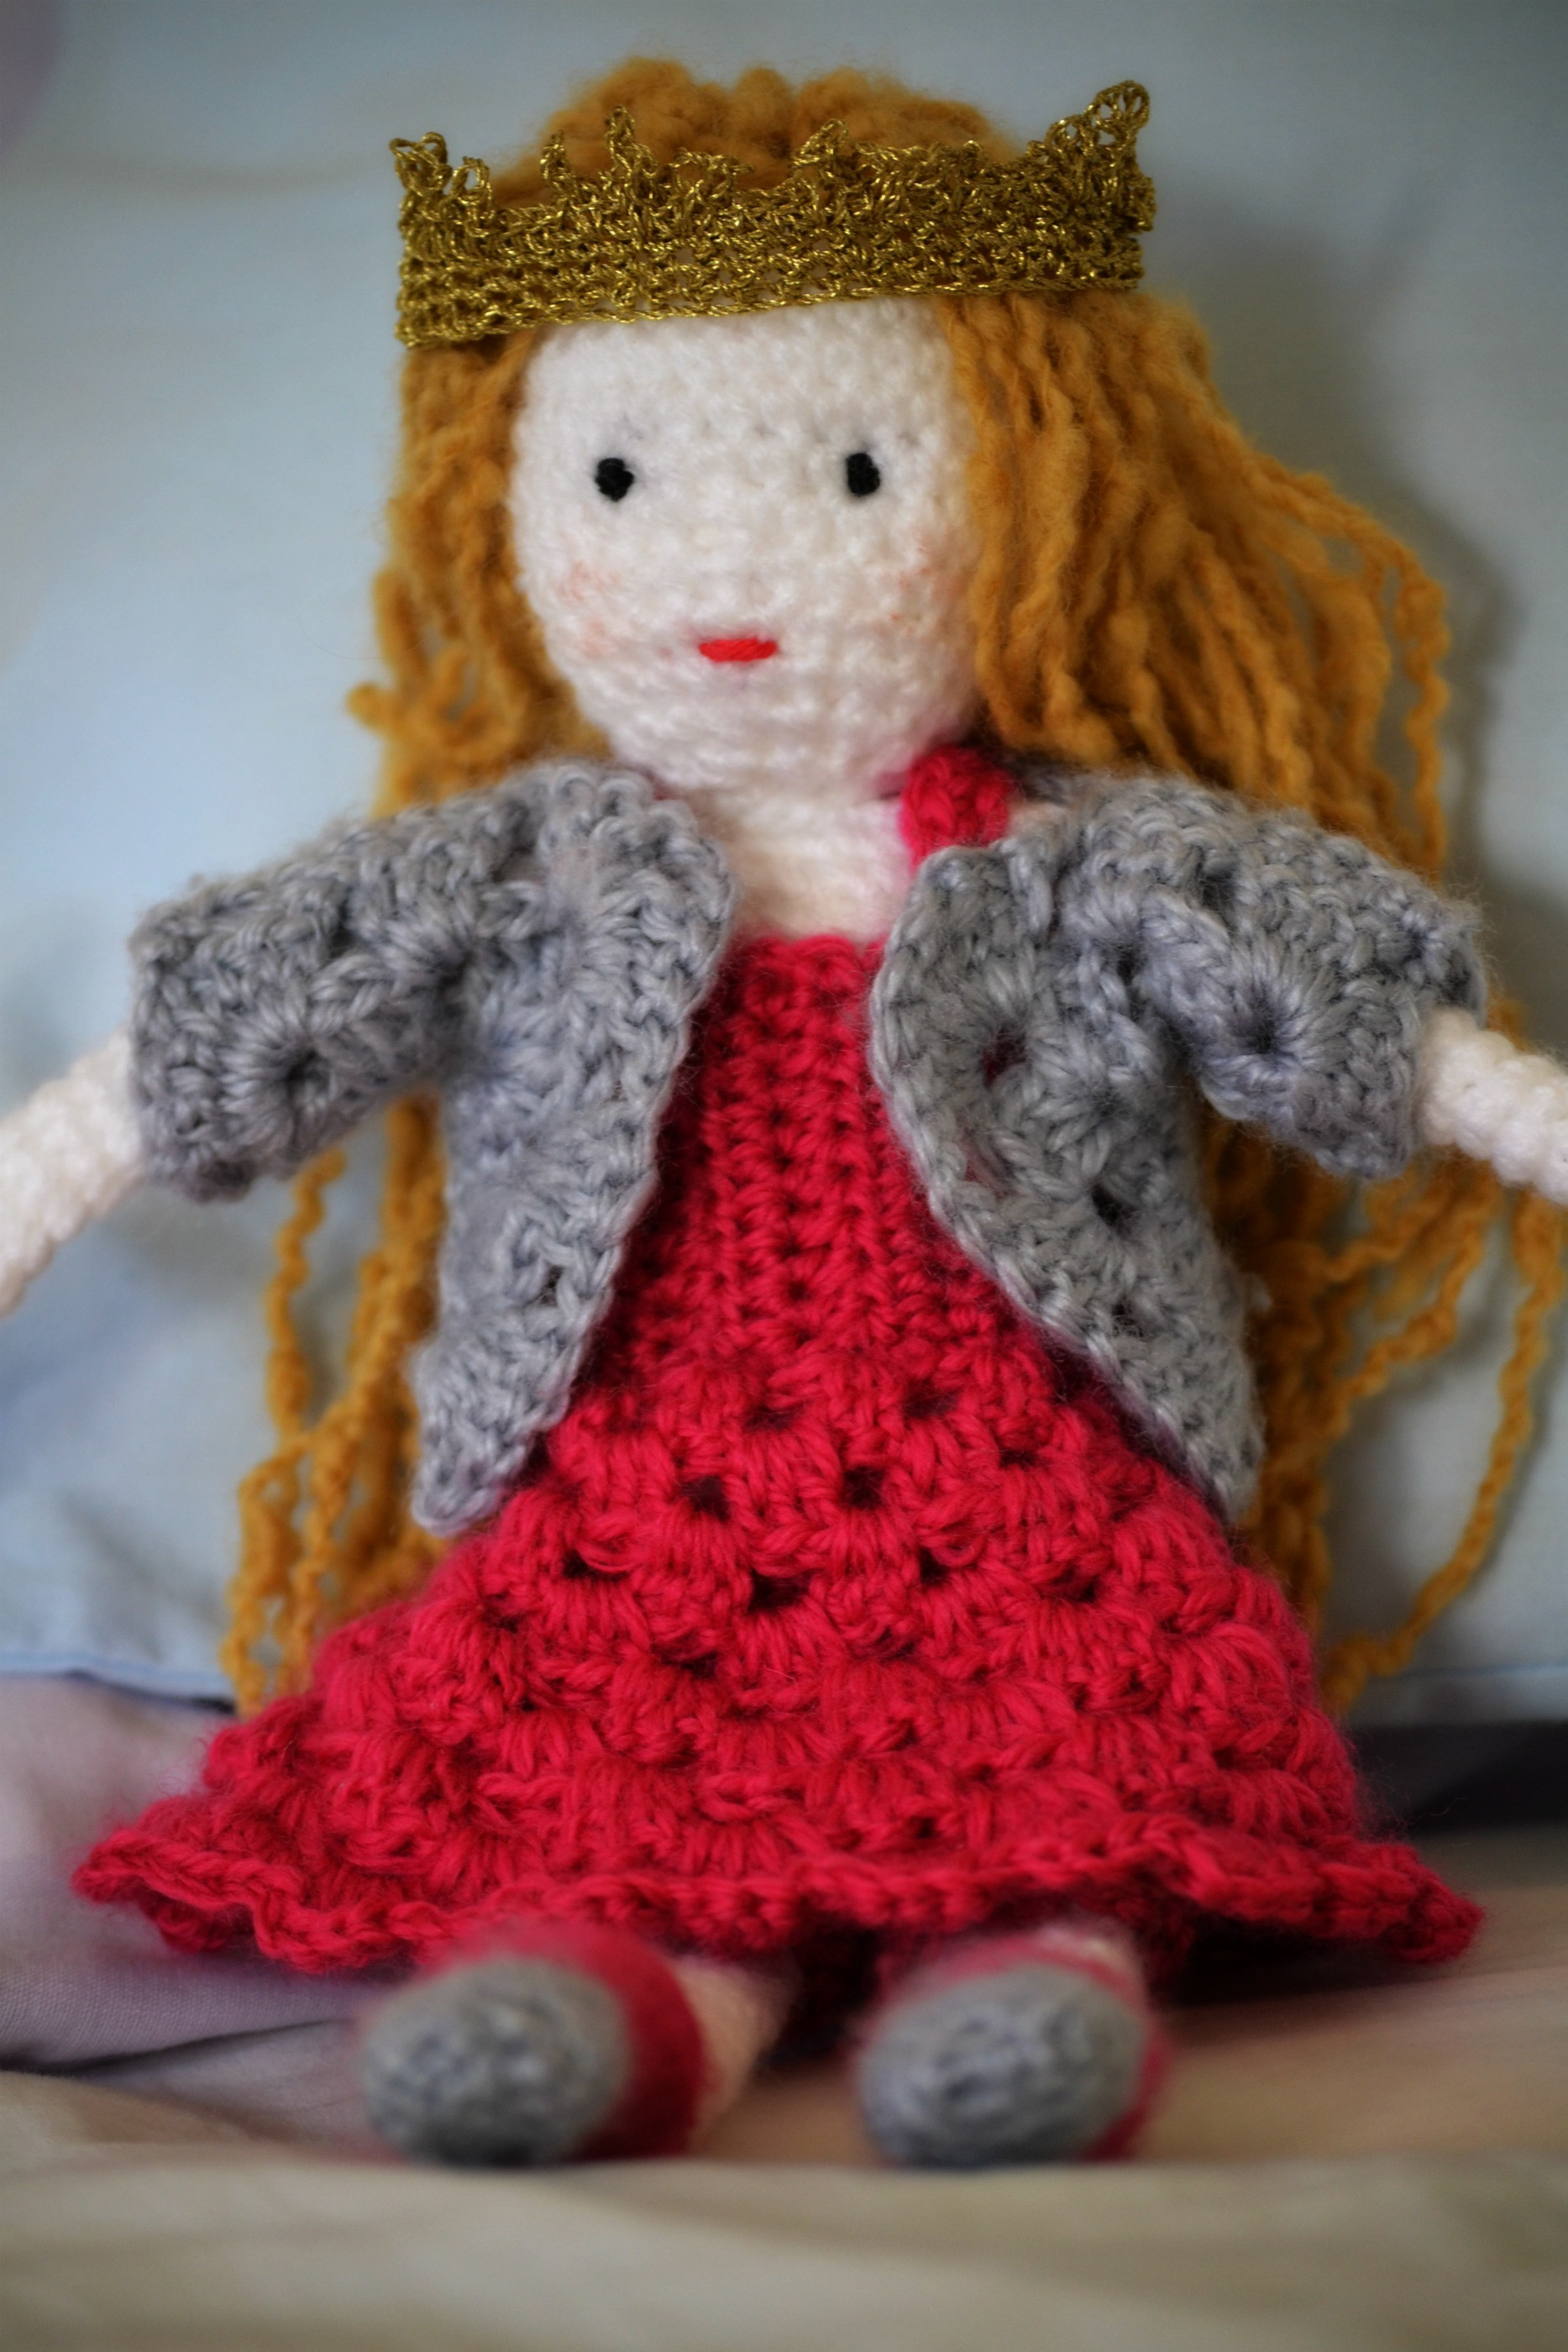 Crochet Doll Patterns Lovely Princess Poppy – the Green Dragonfly Of Adorable 42 Ideas Crochet Doll Patterns